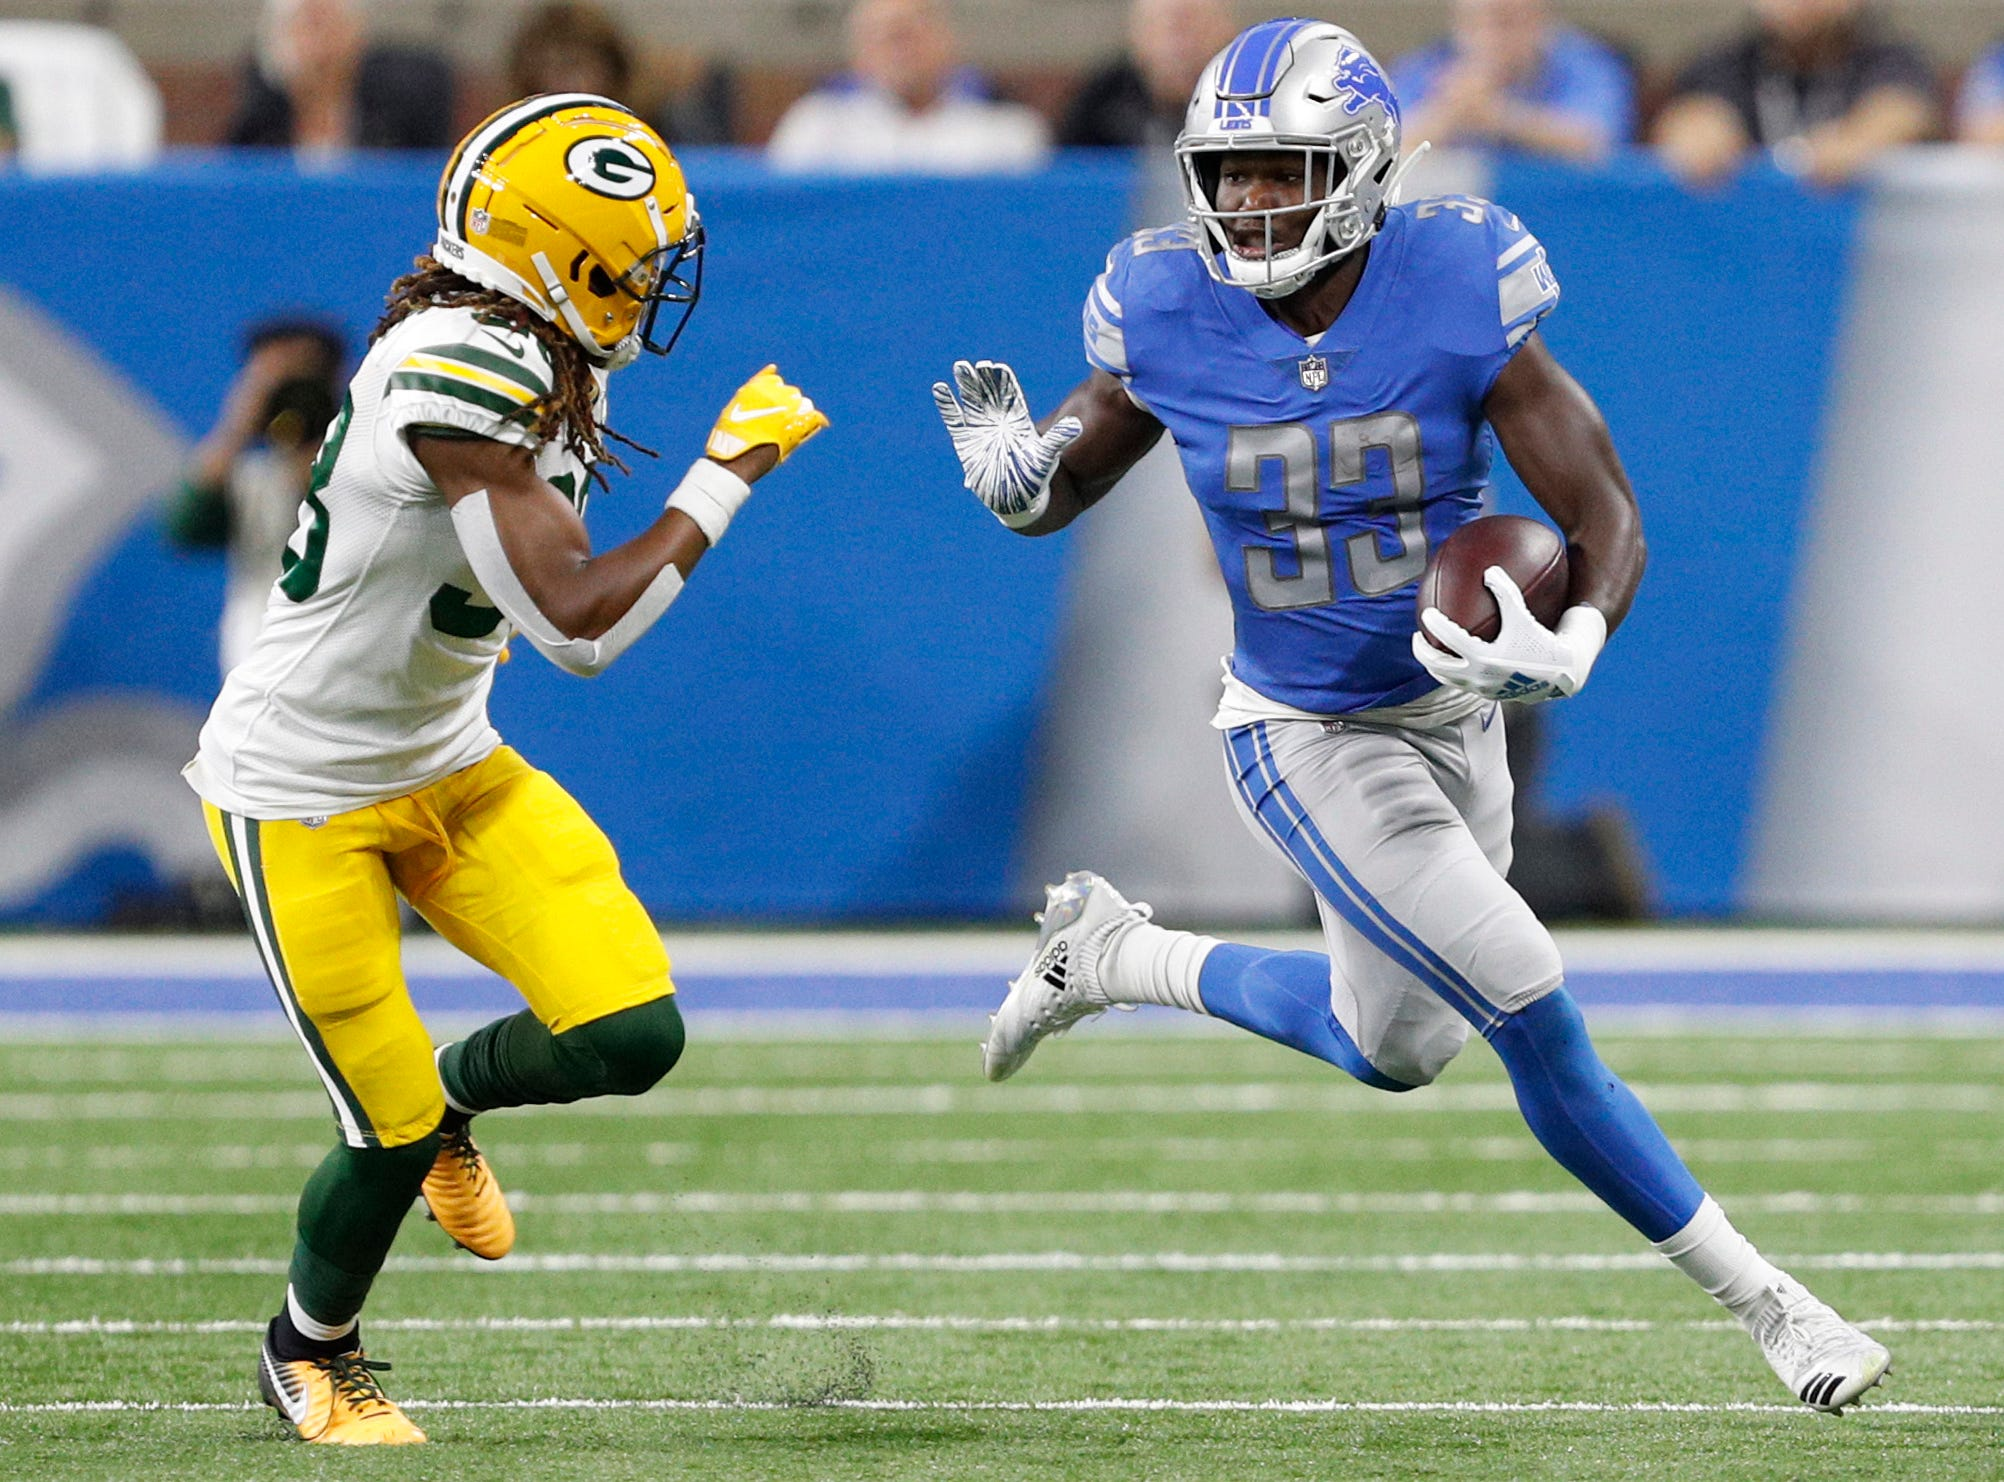 Lions running back Kerryon Johnson runs the ball against Packers cornerback Tramon Williams during the first half on Sunday, Oct. 7, 2018, at Ford Field.